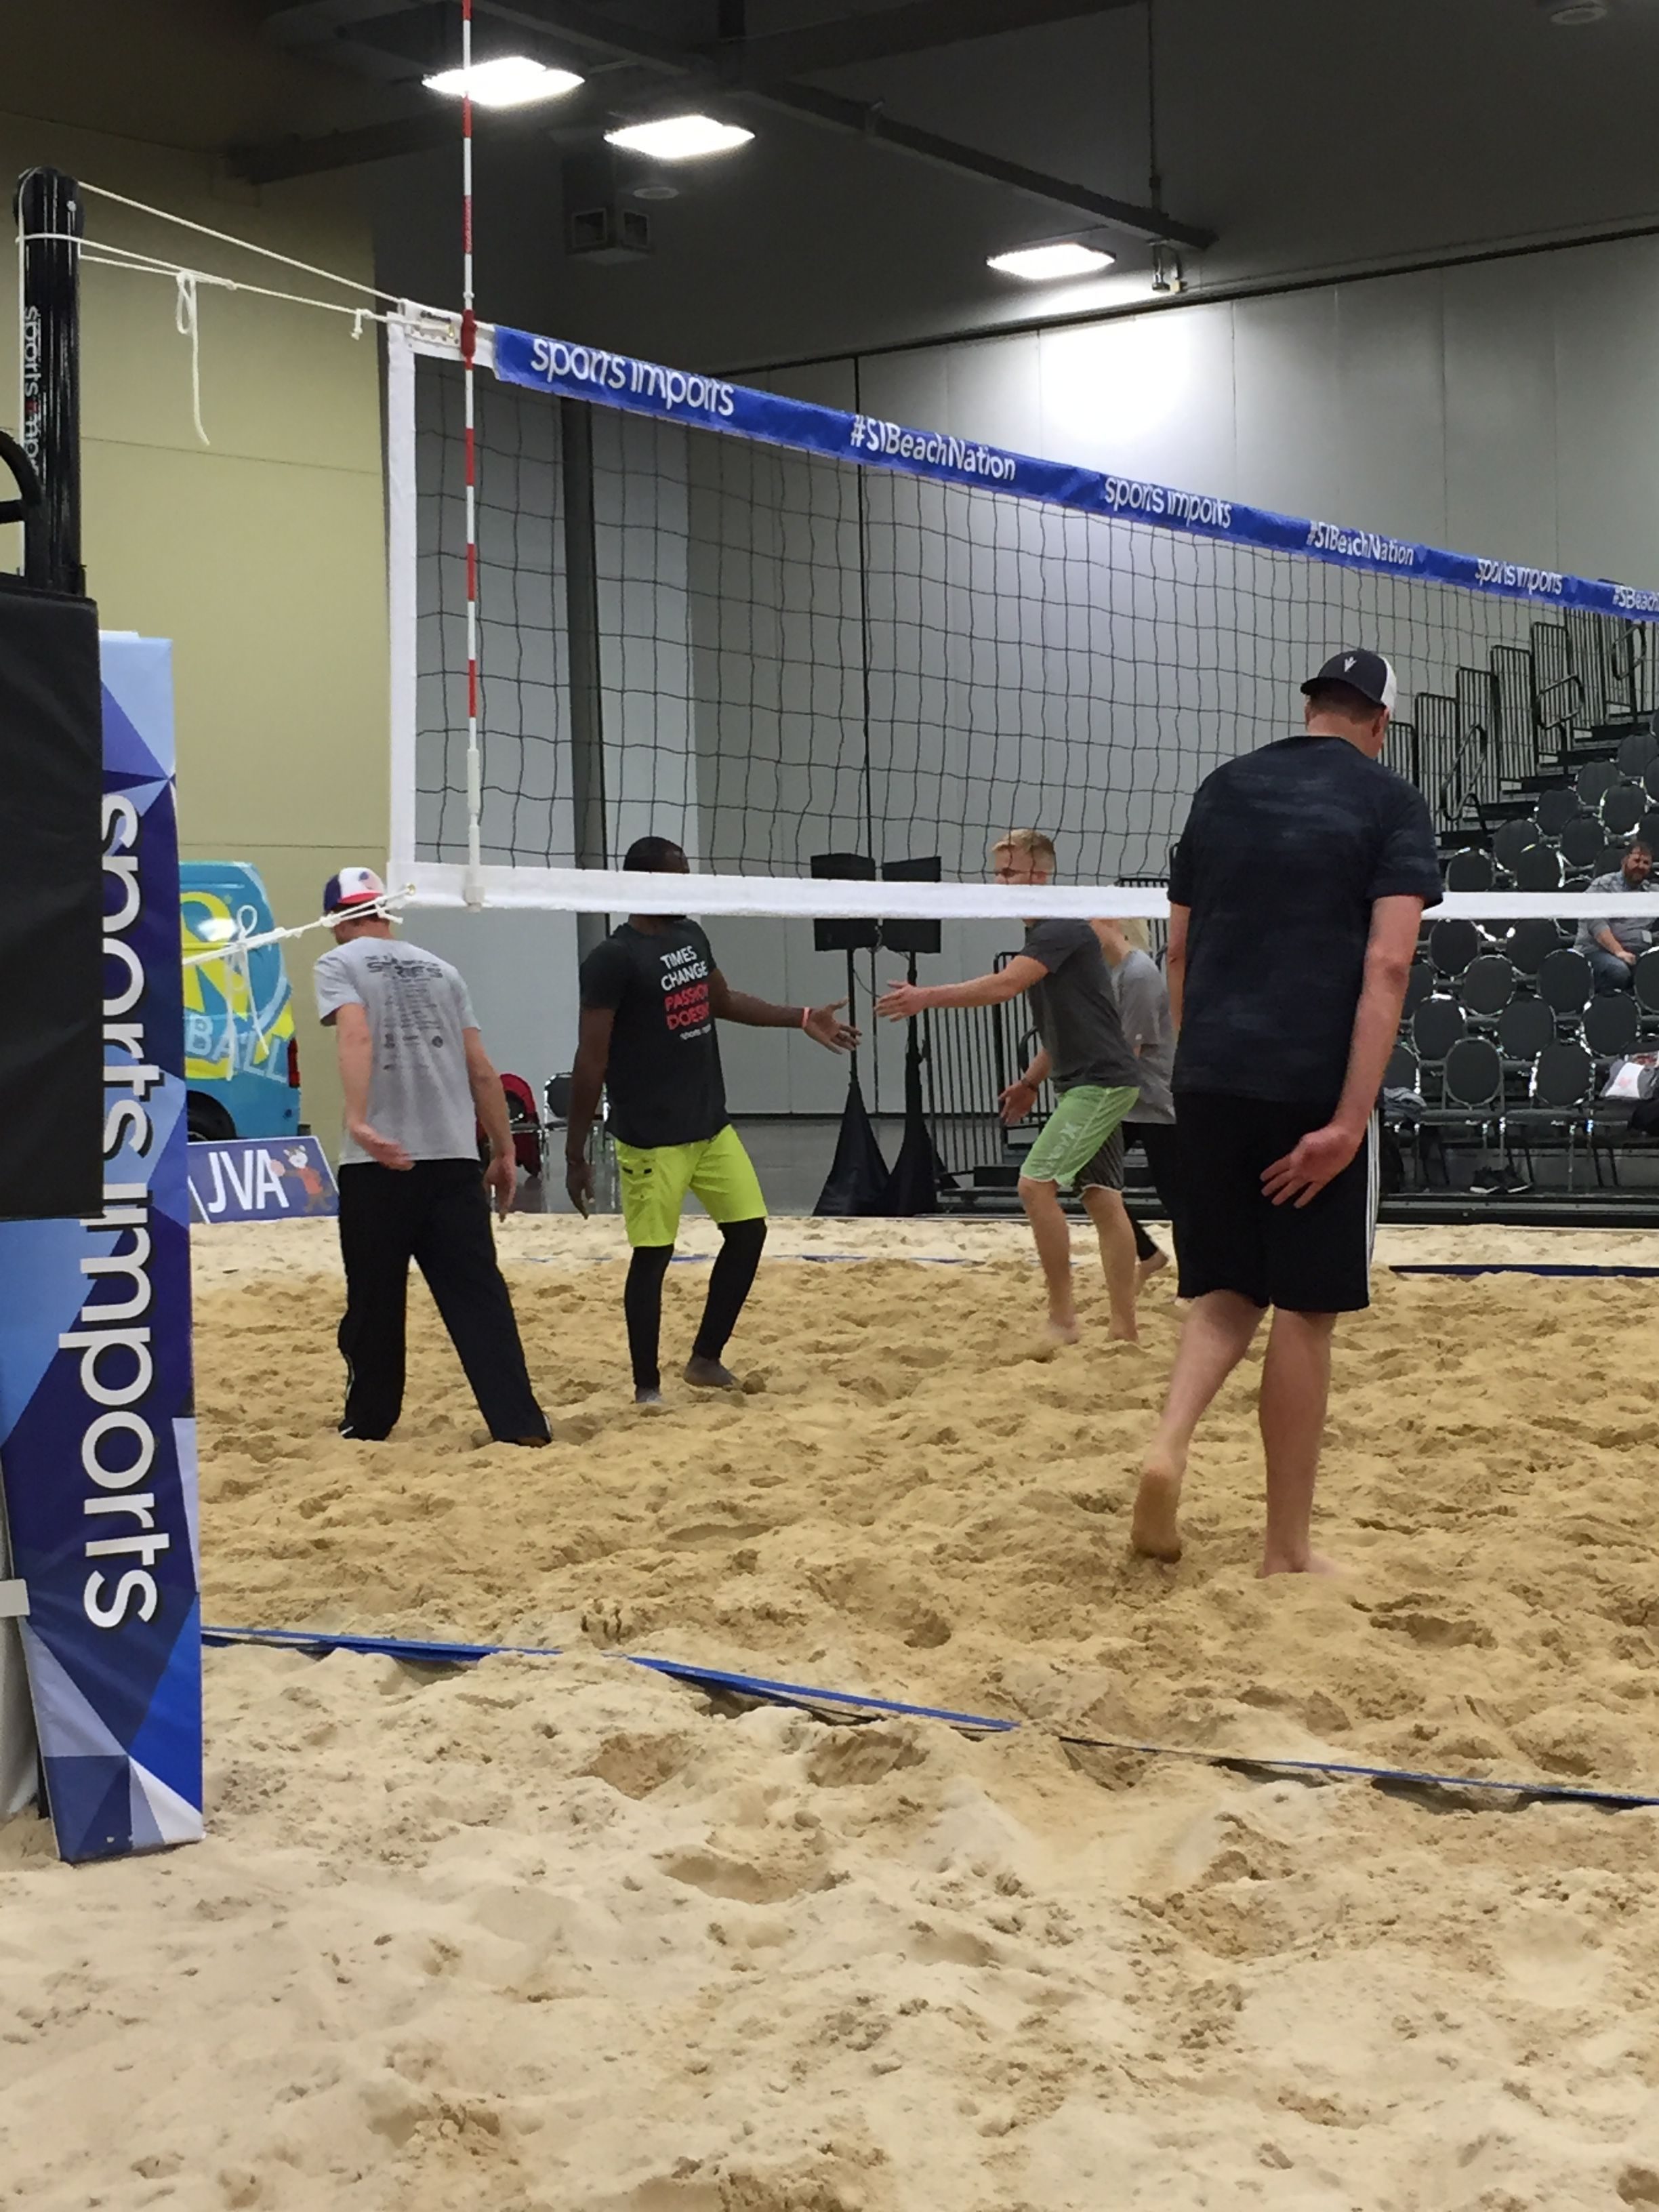 Beach Volleyball At The Avca Convention Volleyball Volleyball Net Volleyball Equipment